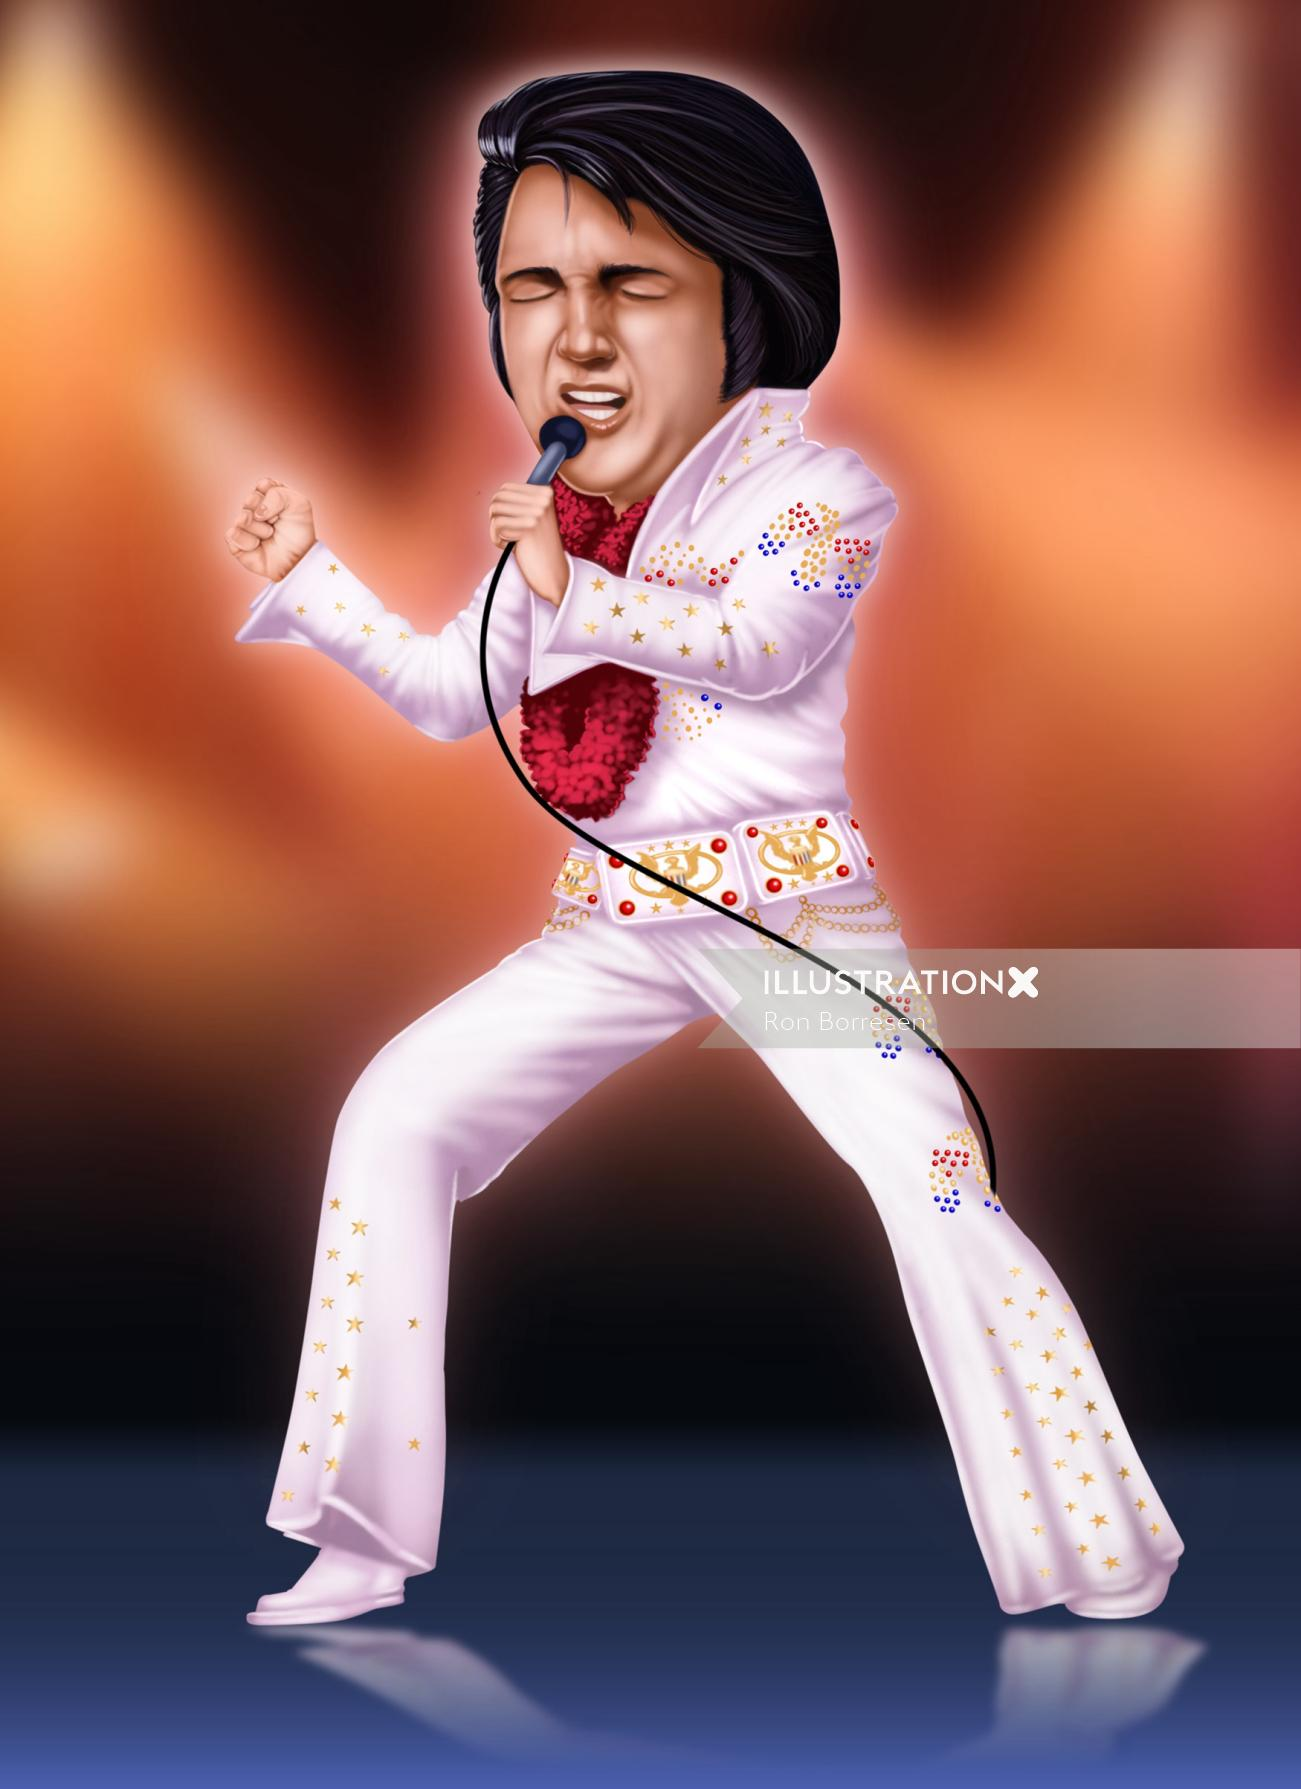 Illustration of a singer singing passionately